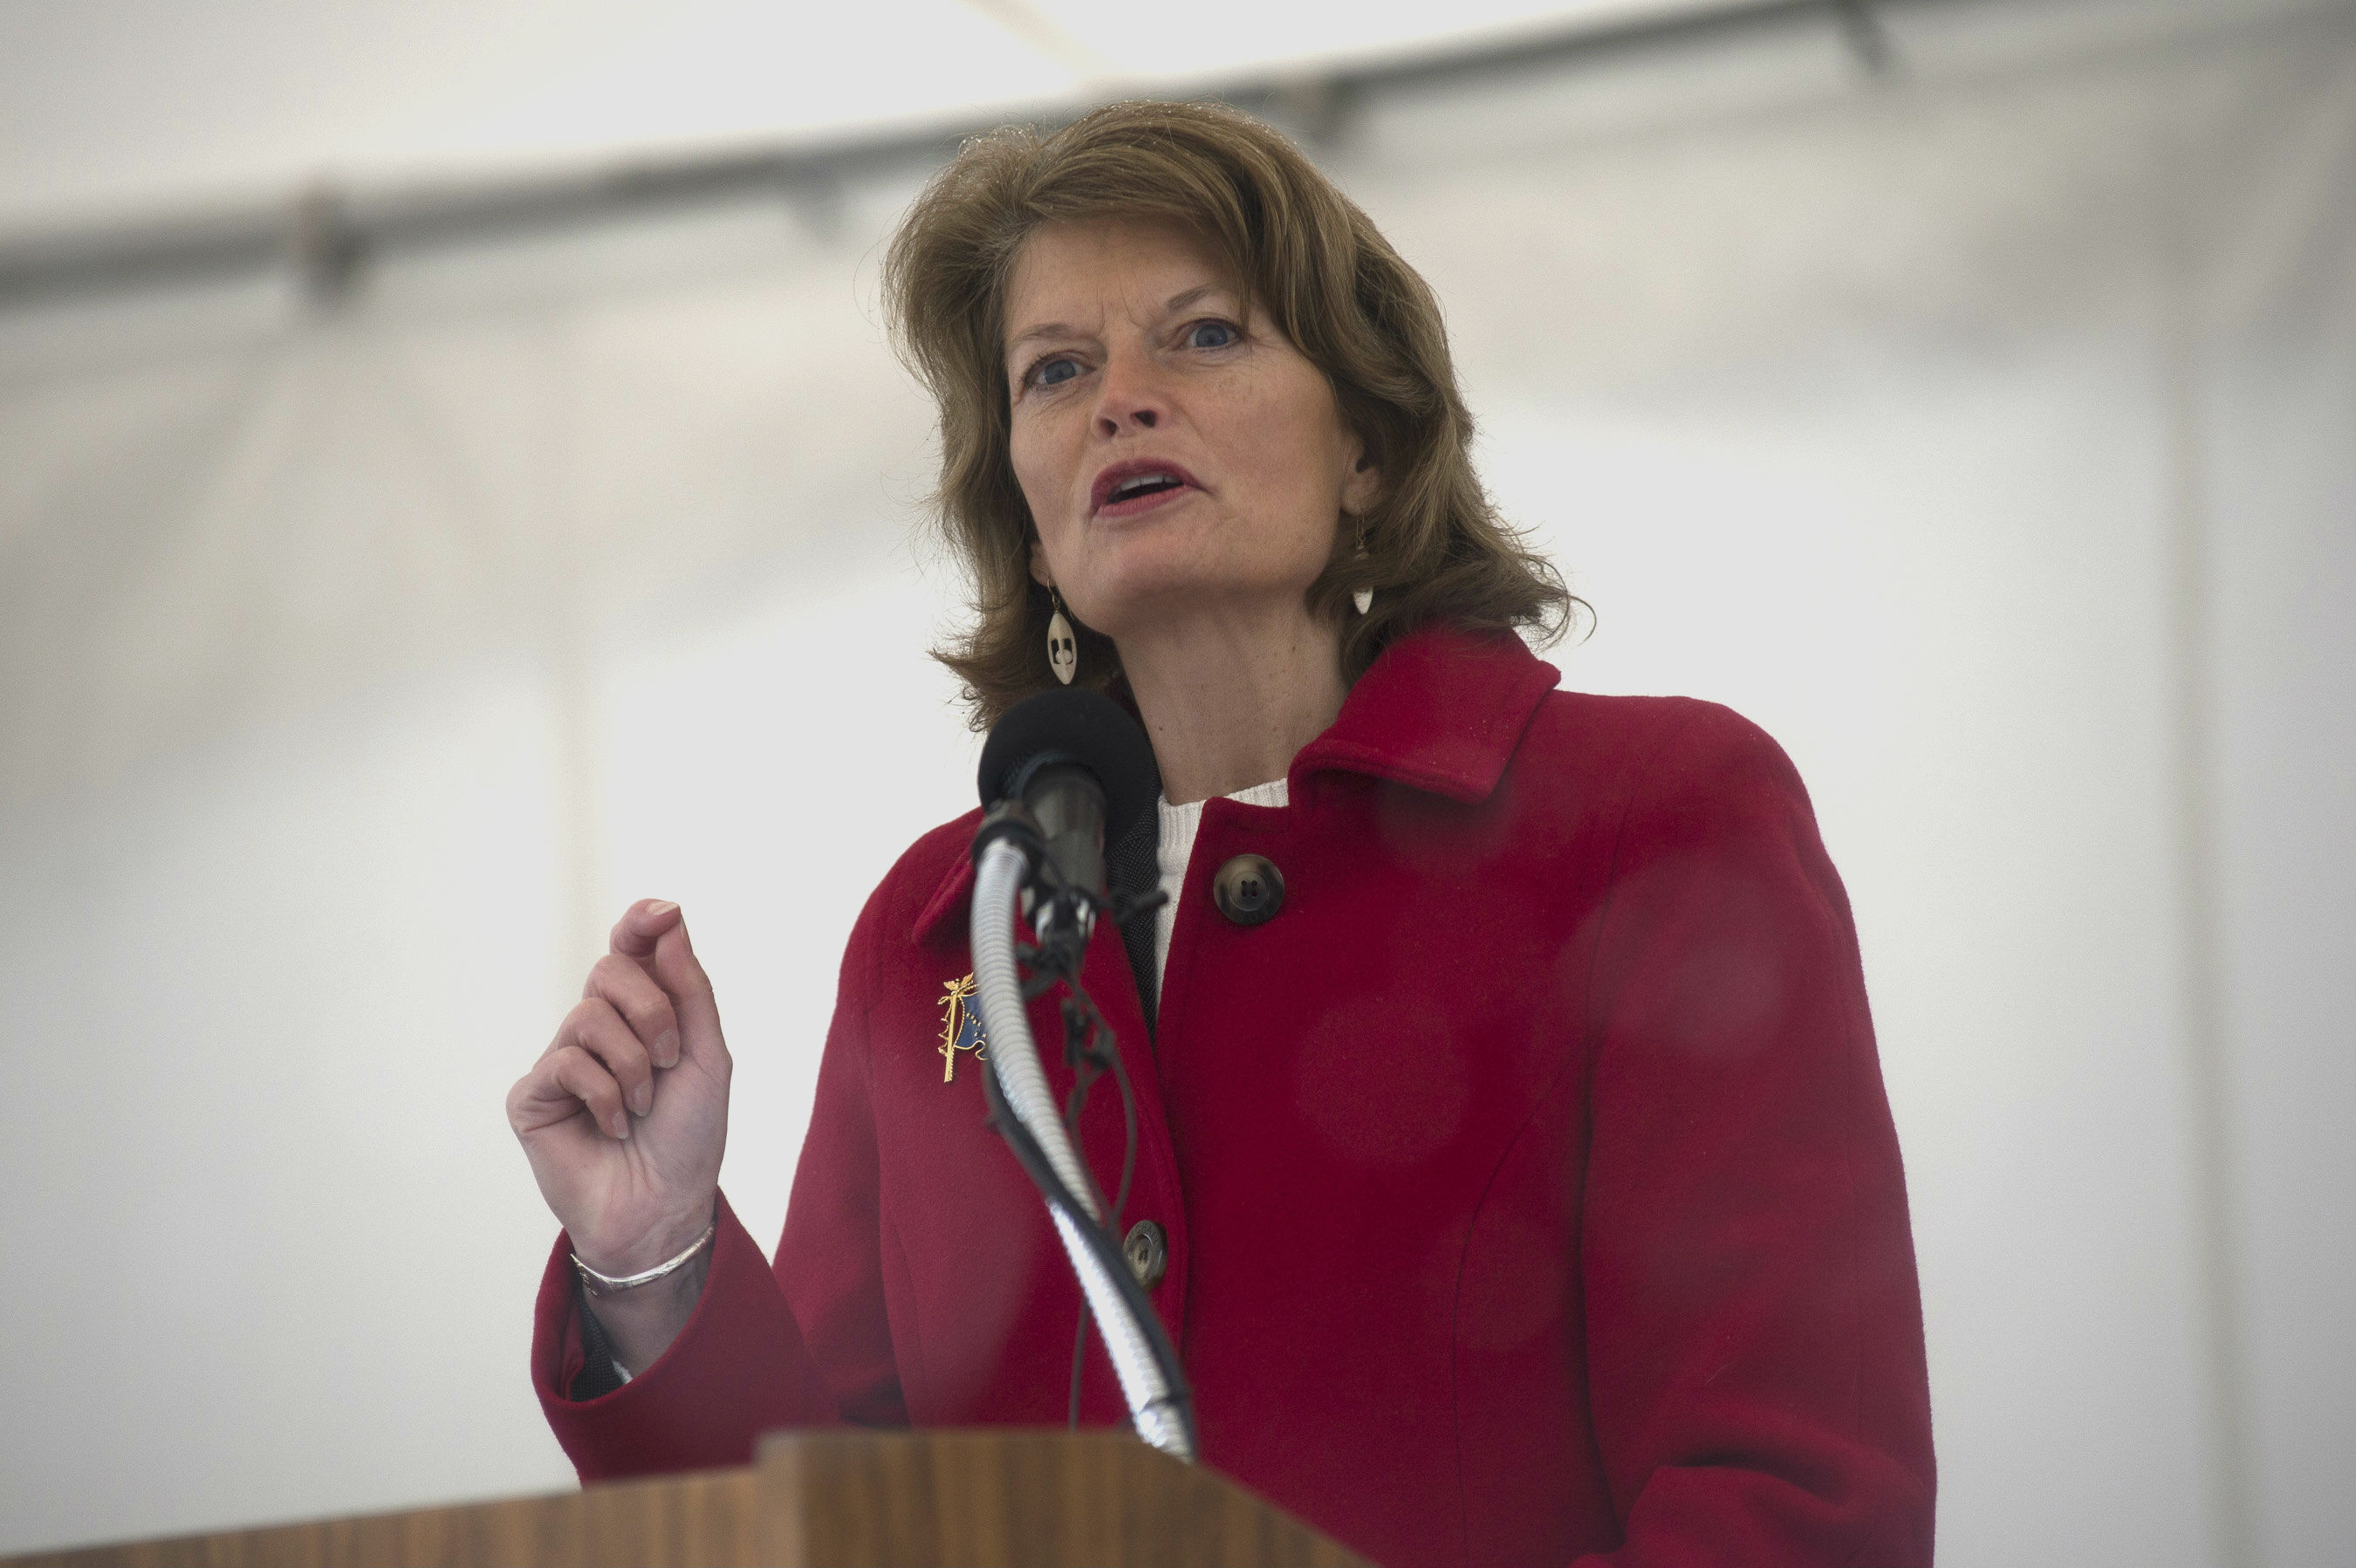 Sen. Lisa Murkowski (R-Alaska) speaks during the commissioning ceremony of San Antonio-class amphibious transport dock ship USS Anchorage (LPD 23) at the Port of Anchorage, May 4, 2013. More than 4,000 people gathered to witness the ship's commissioning in its namesake city of Anchorage, Alaska. Anchorage, the seventh San Antonio-class LPD, is the second ship to be named for the city and the first U.S. Navy ship to be commissioned in Alaska. (Photo by Specialist 1st Class James R. Evans/U.S. Navy)